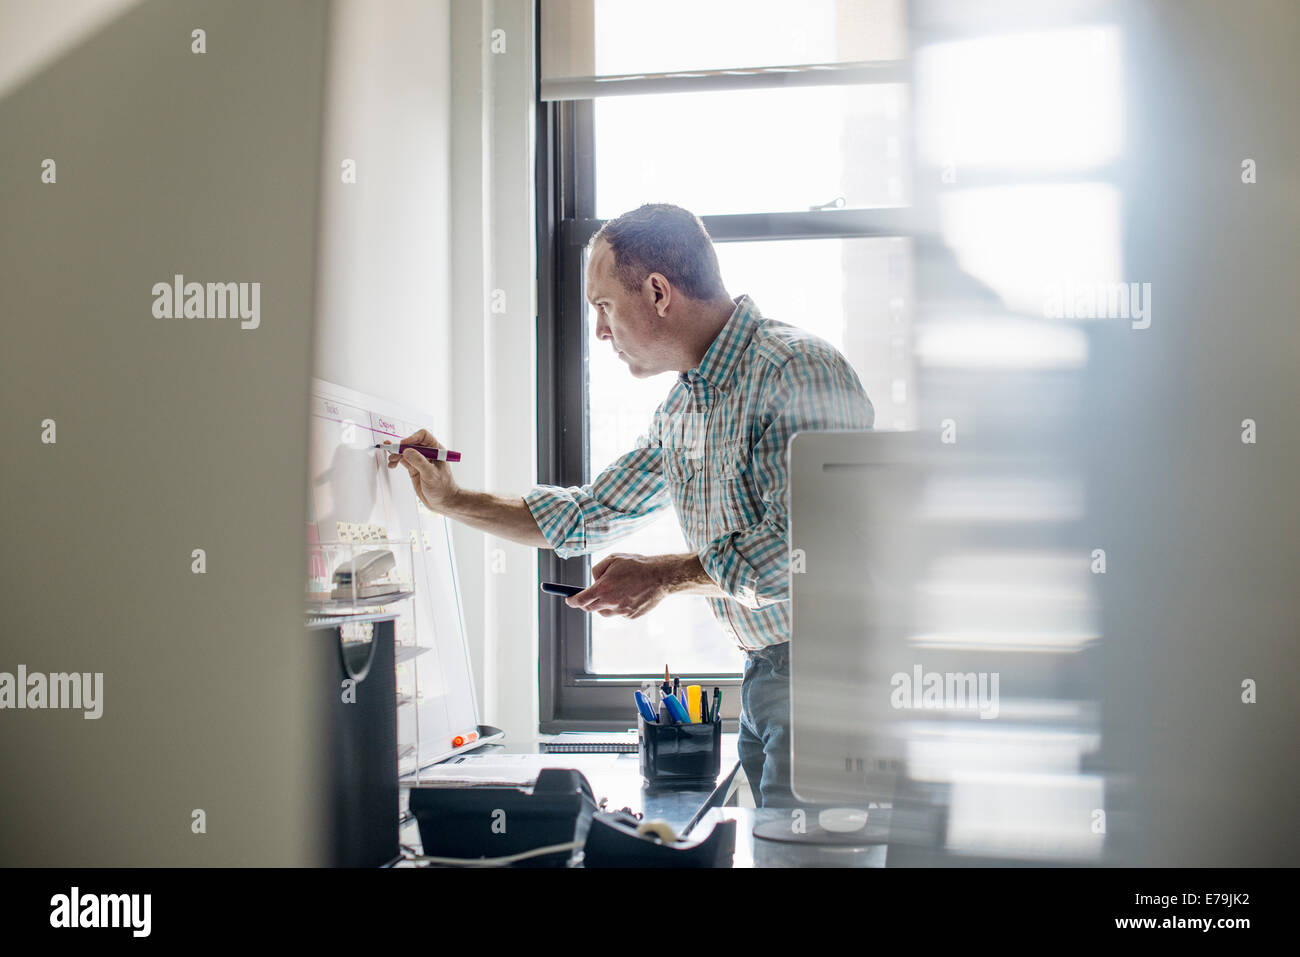 Office life. A man standing up working and making notes on a wall chart. Project management. - Stock Image